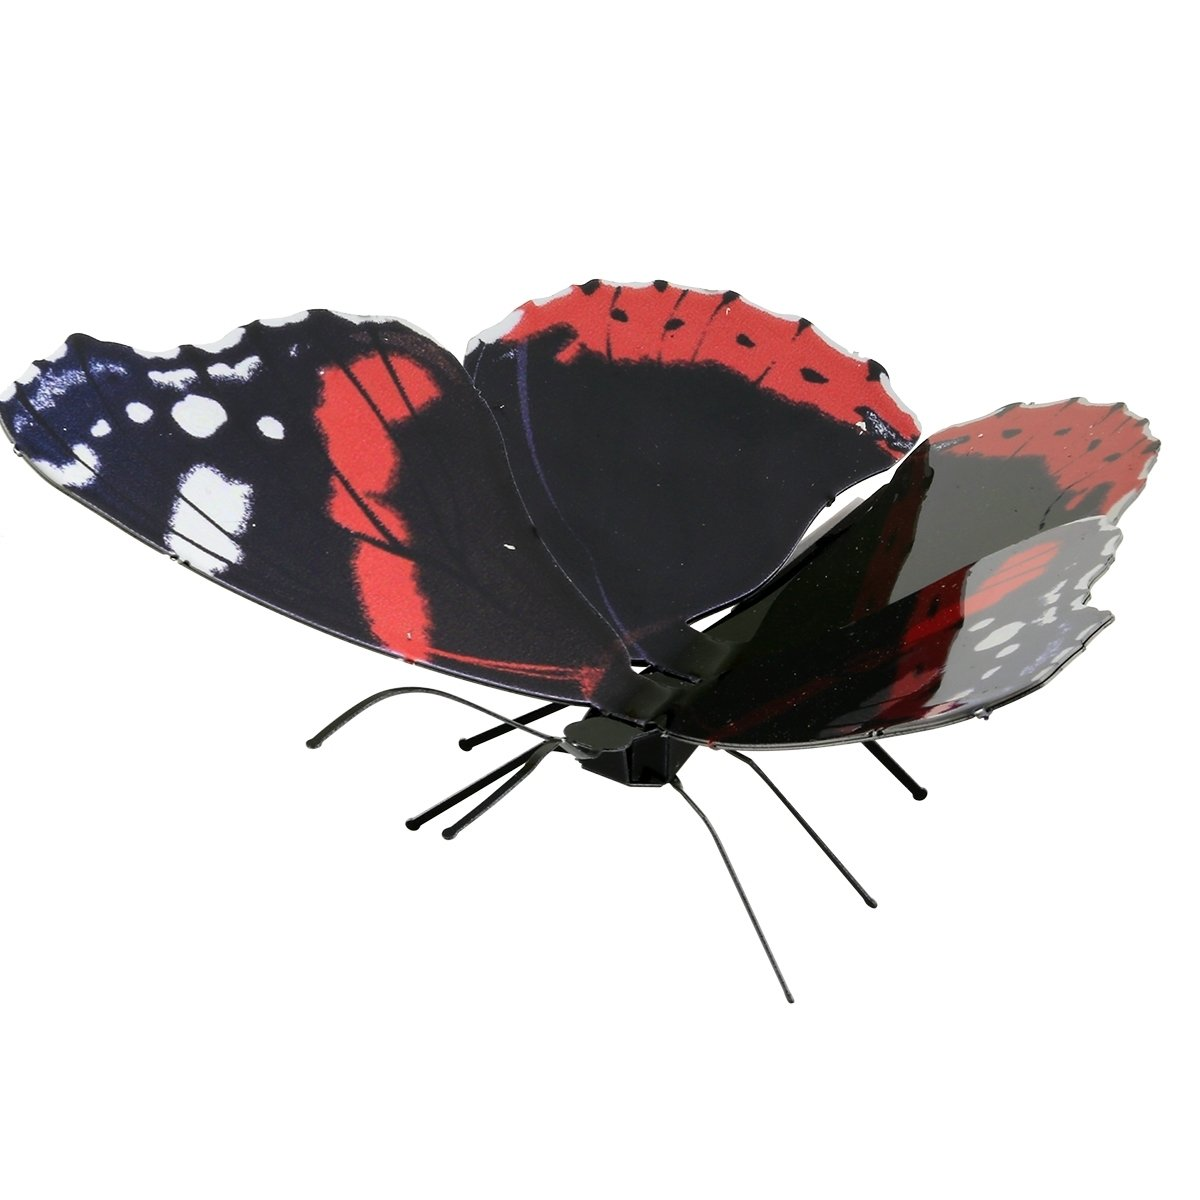 Fascinations Metal Earth Red Admiral Butterfly 3D Metal Model Kit SG/_B06Y2K2GX1/_US